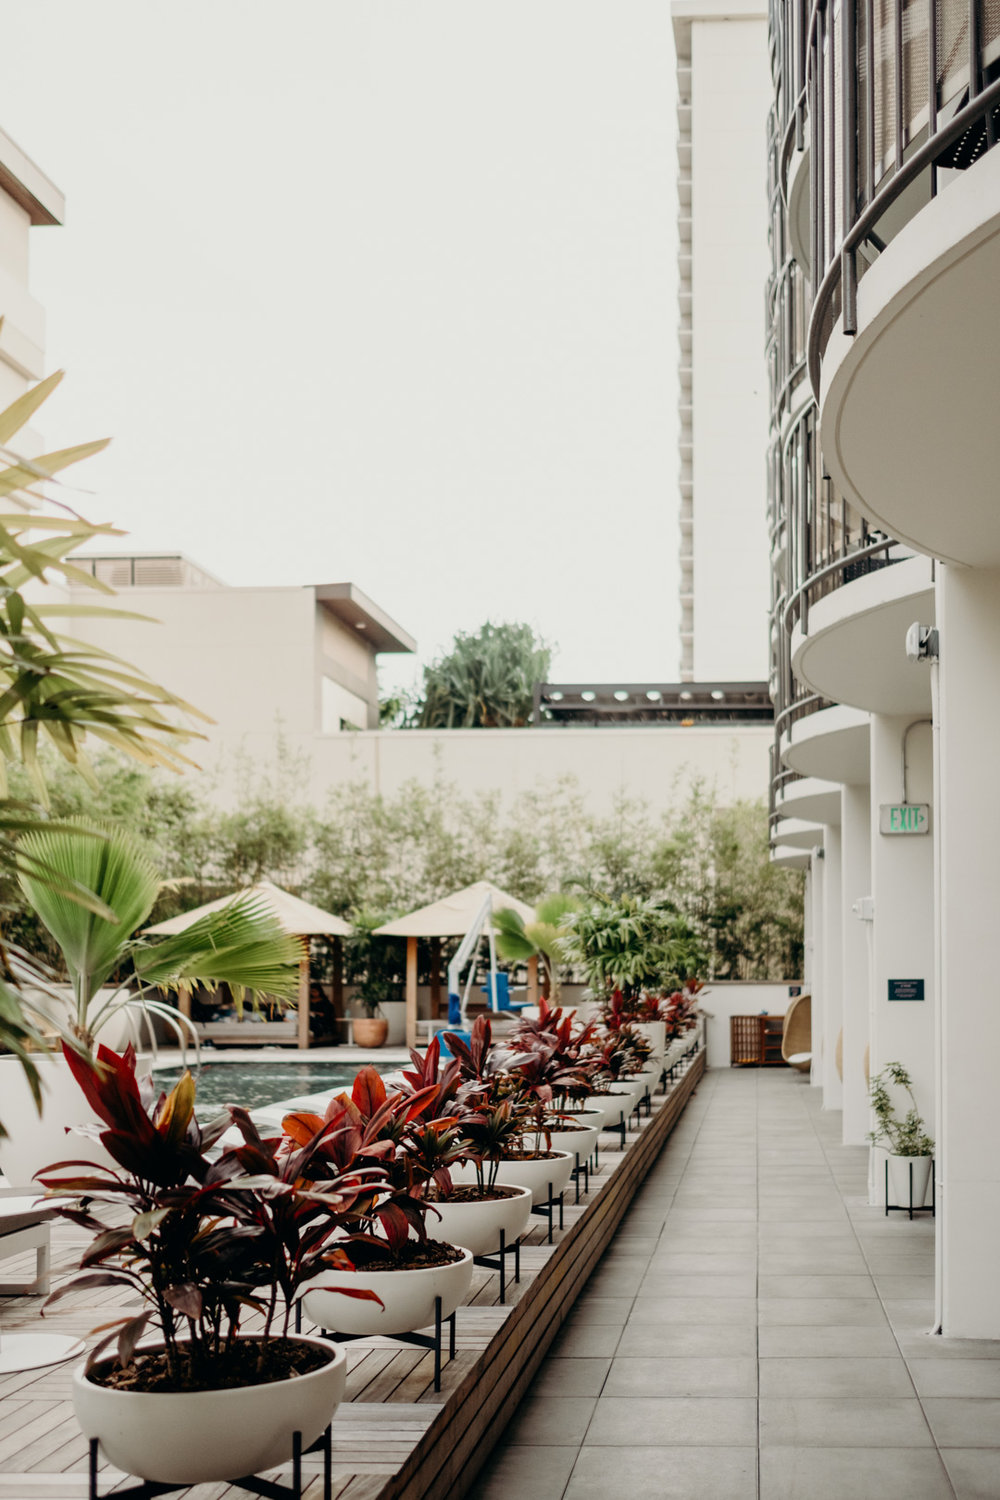 20180416_Visit Hawaii_Honolulu_The Laylow Hotel_7.jpg